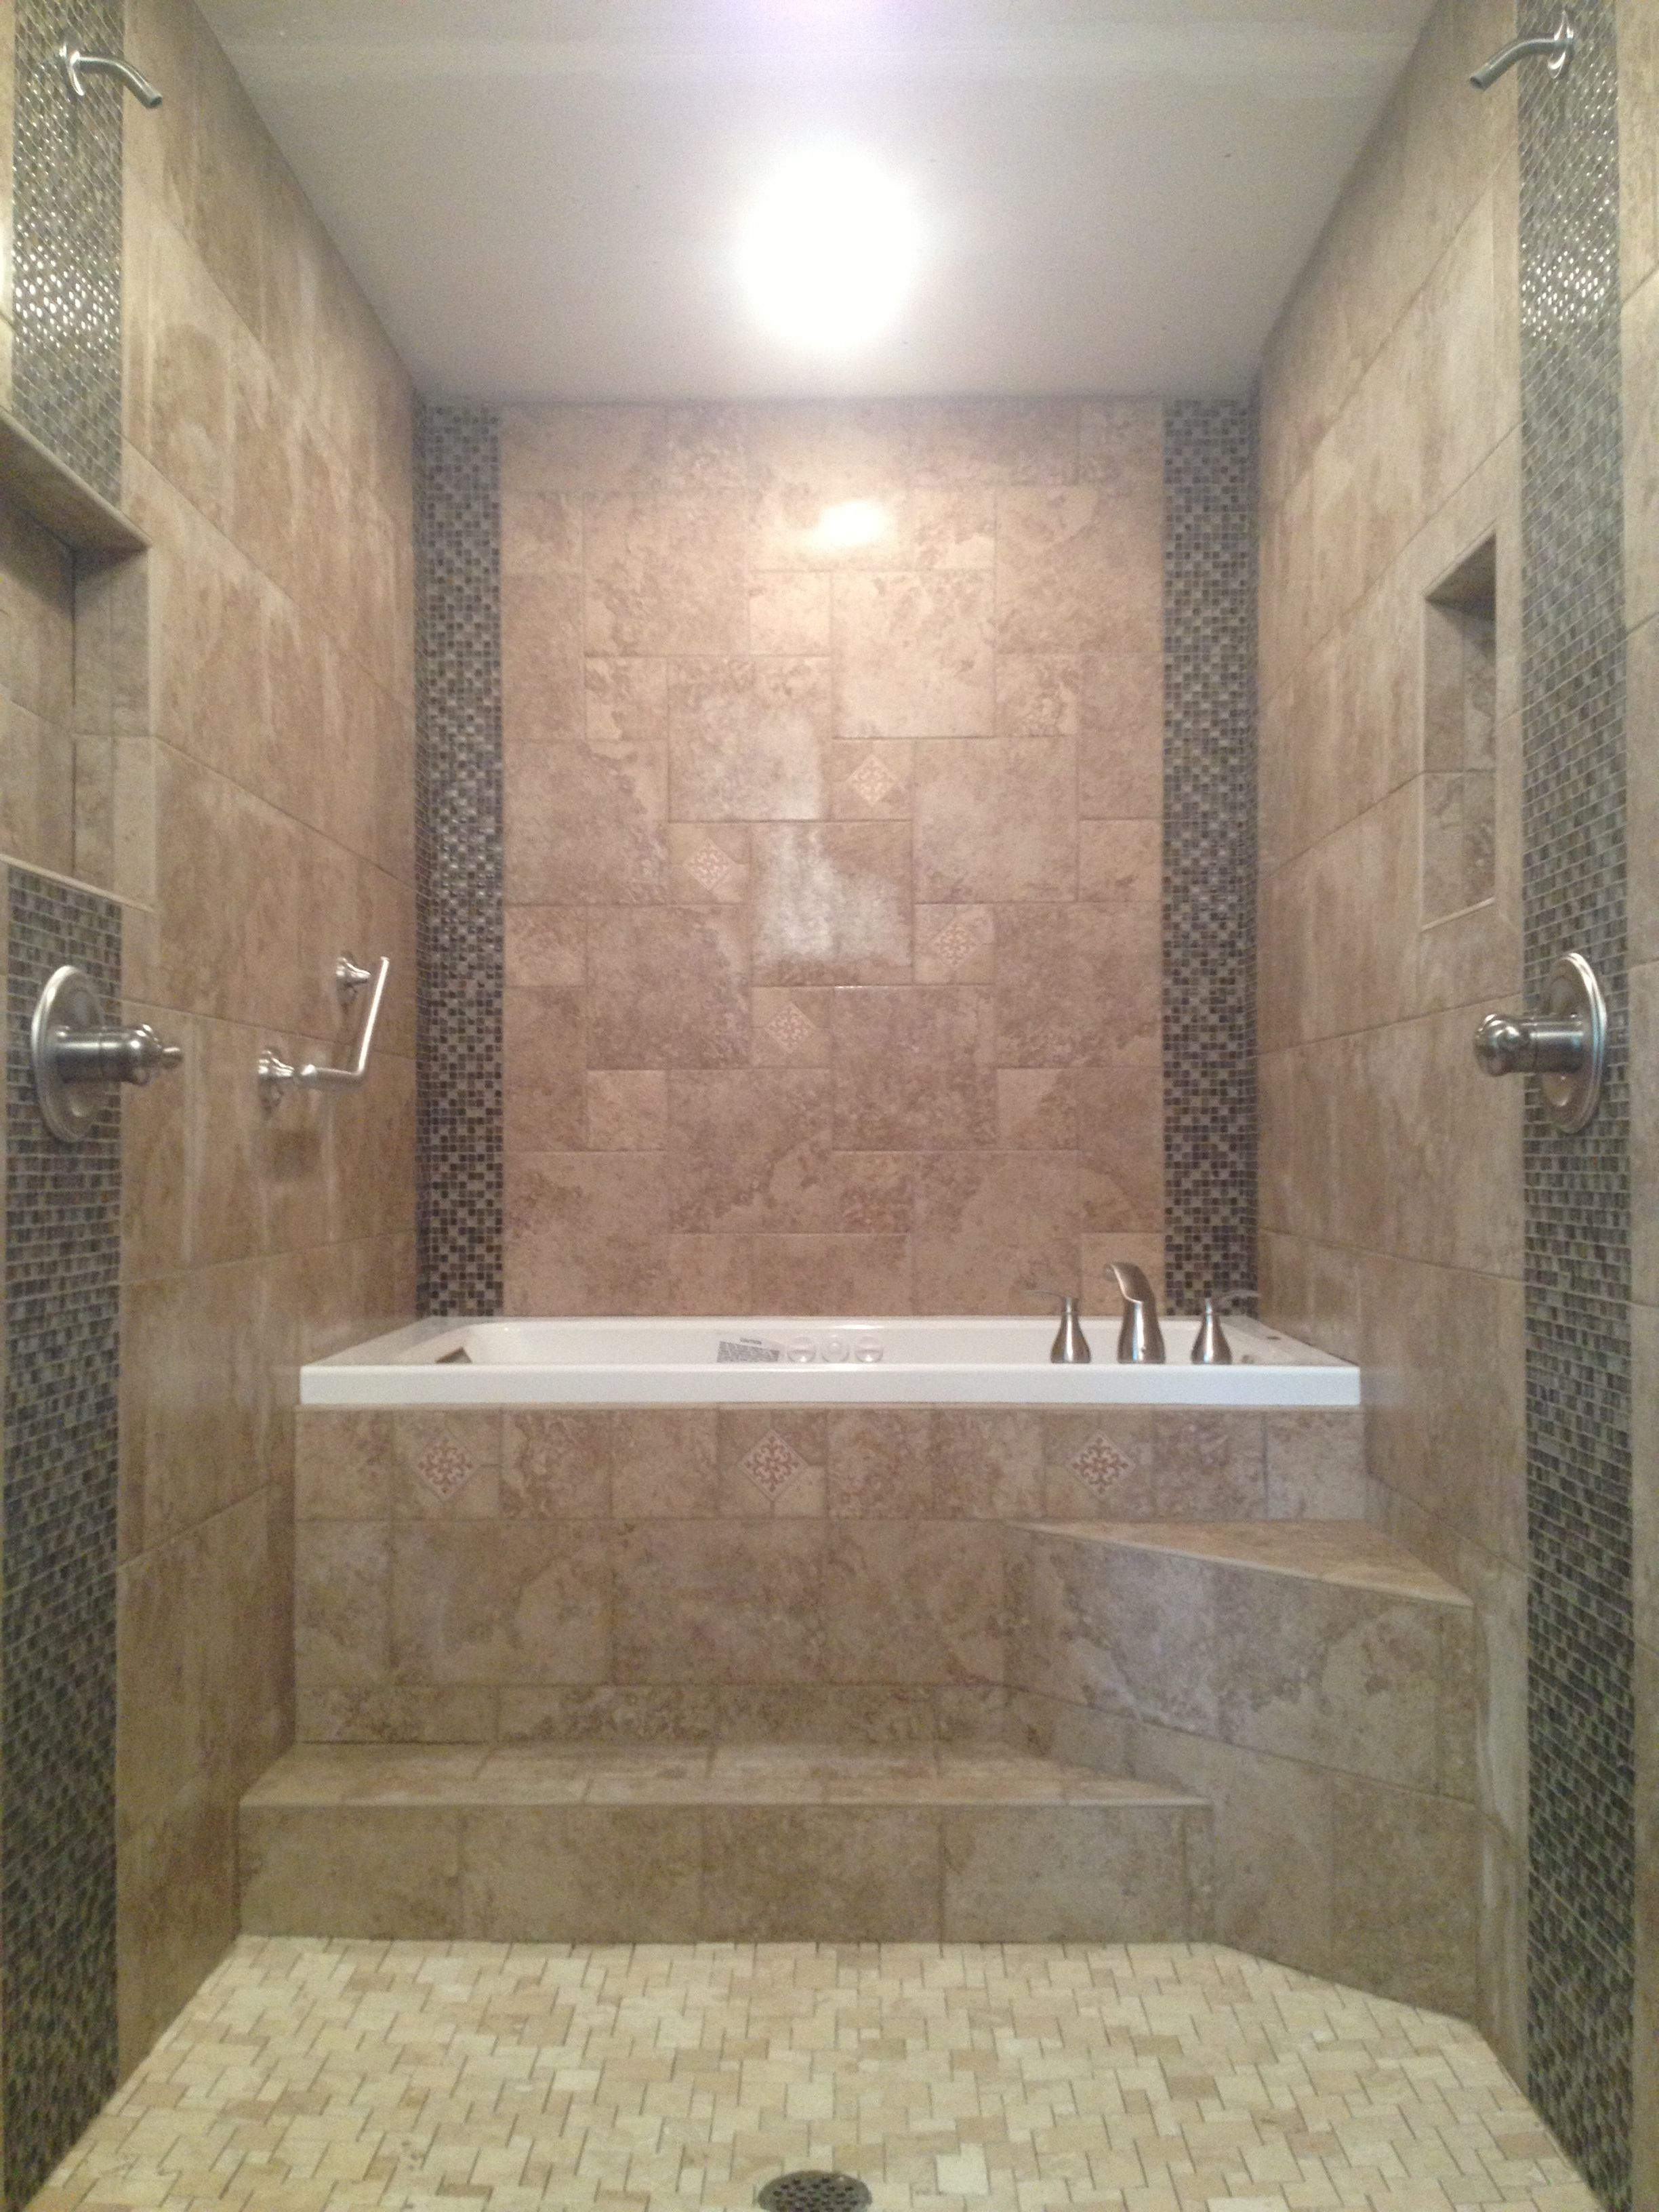 Walk Through Dual Head Shower To A Raised Drop In Jacuzzi Whirlpool Tub.  Just Needs A Rainfall Shower Head.